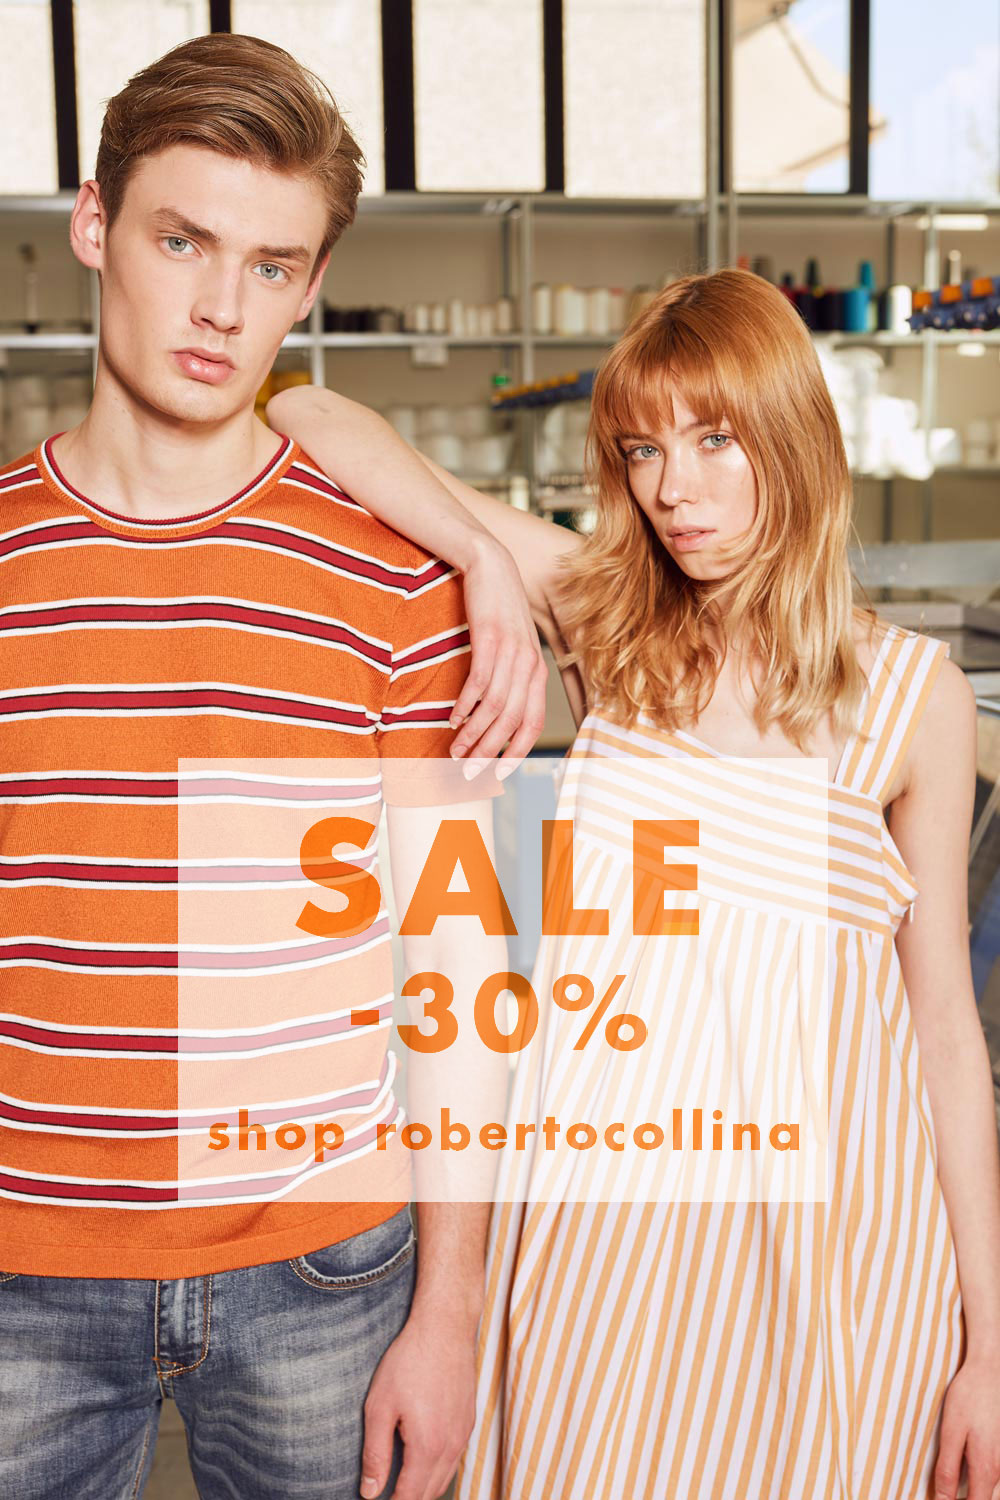 SUMMER WILL NO LONGER BE THE SAME… WITH THE ROBERTO COLLINA SALES!